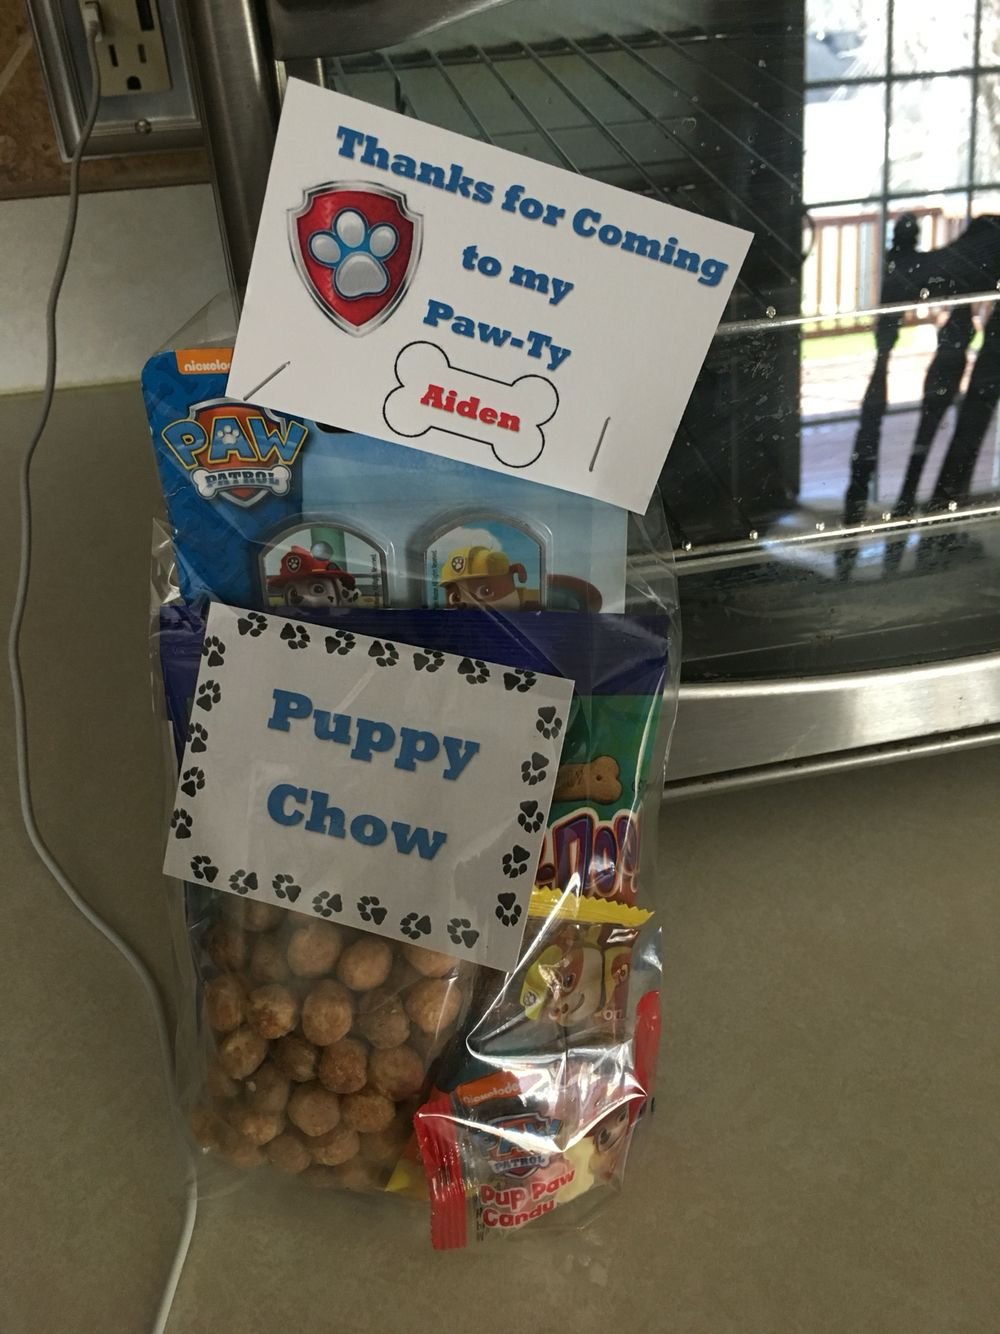 Paw patrol party favors. Reese puff cereal for puppy chow